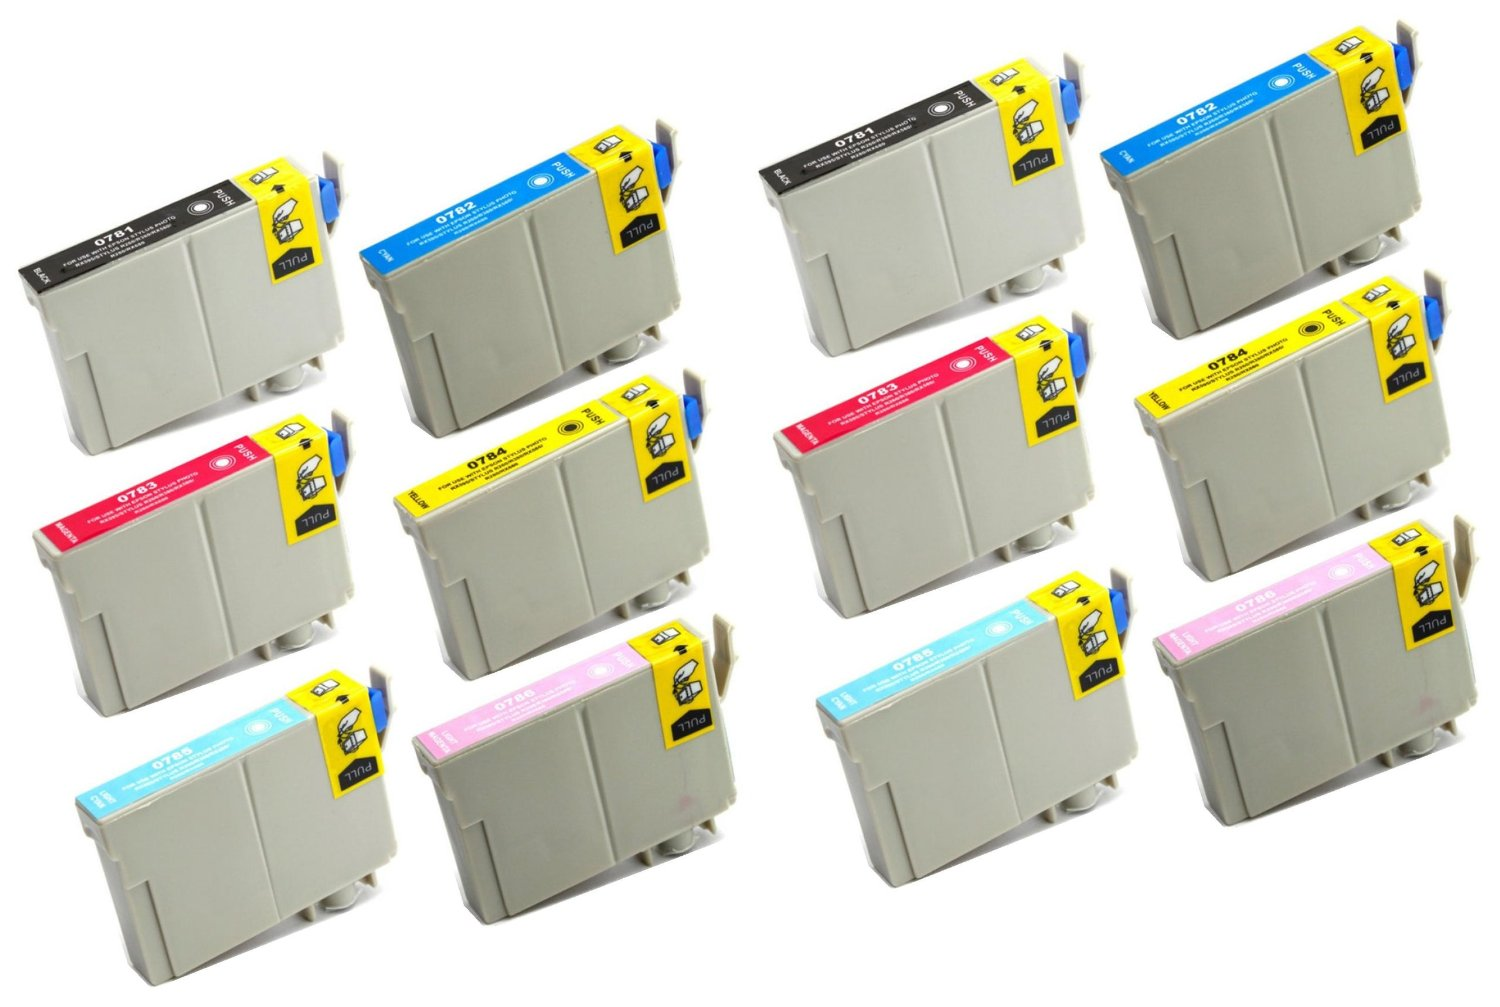 12 Pack Remanufactured Inkjet Cartridges for Epson T078 #78 T078120 T078220 T078320 T078420 T078520 T078620 Compatible With Epson Artisan 50, Stylus Photo R260, Stylus Photo R280, Stylus Photo R380, Stylus Photo RX580, Stylus Photo RX595, Stylus Photo RX680 (2 Black, 2 Cyan, 2 Magenta, 2 Yellow, 2